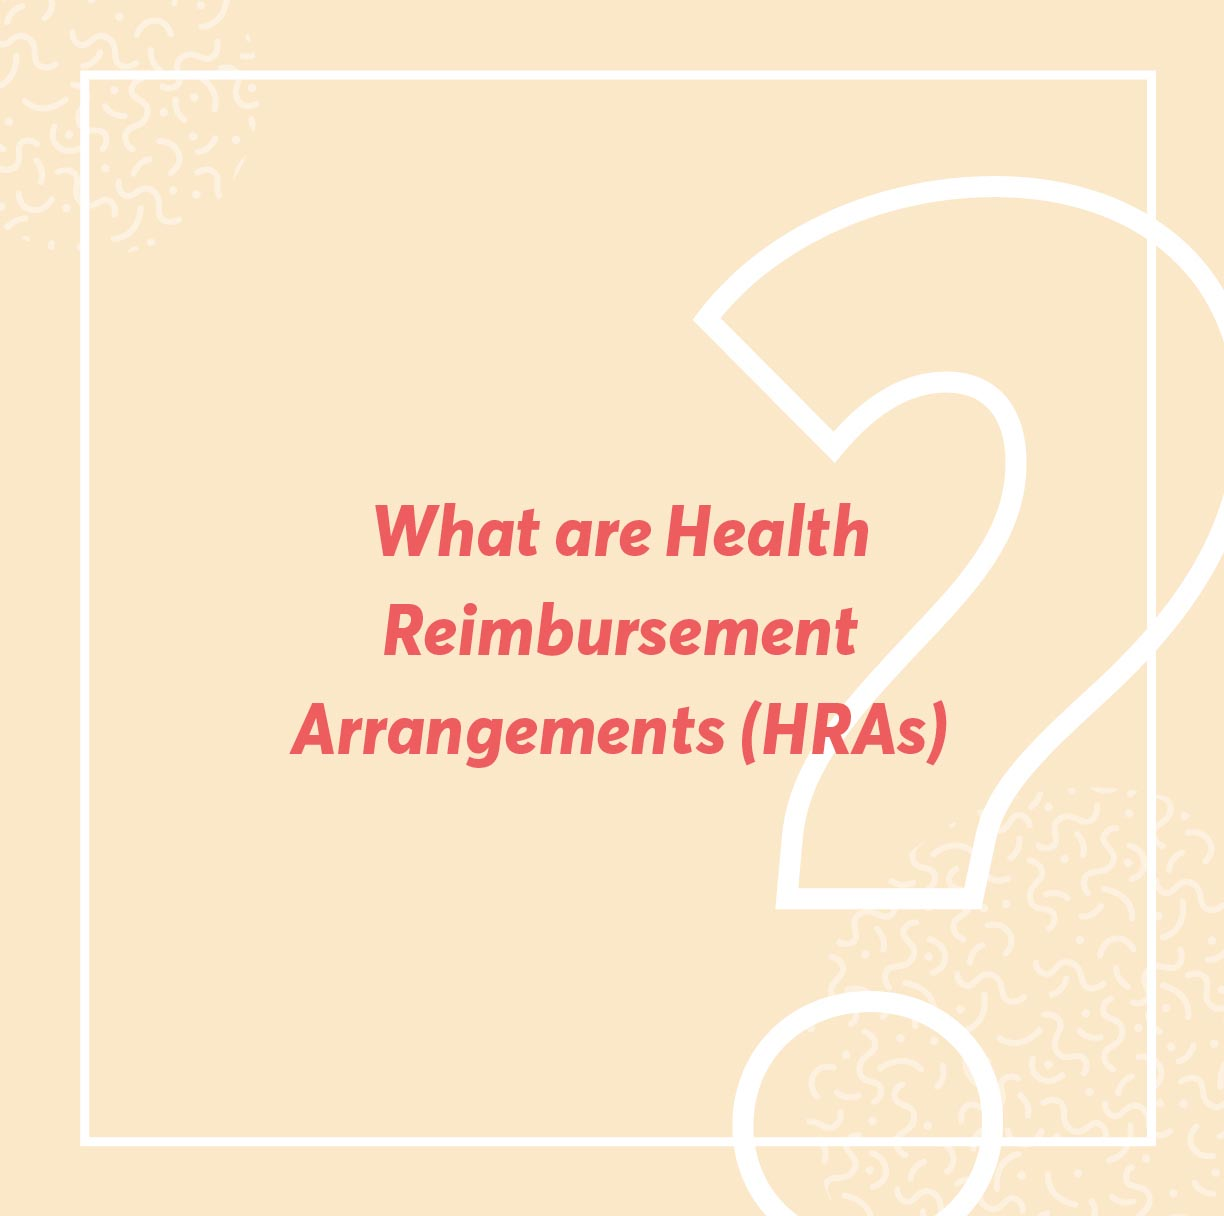 Are you familiar with health reimbursement arrangements (HRAs)? If not, here's a handy guide to get you up to speed.